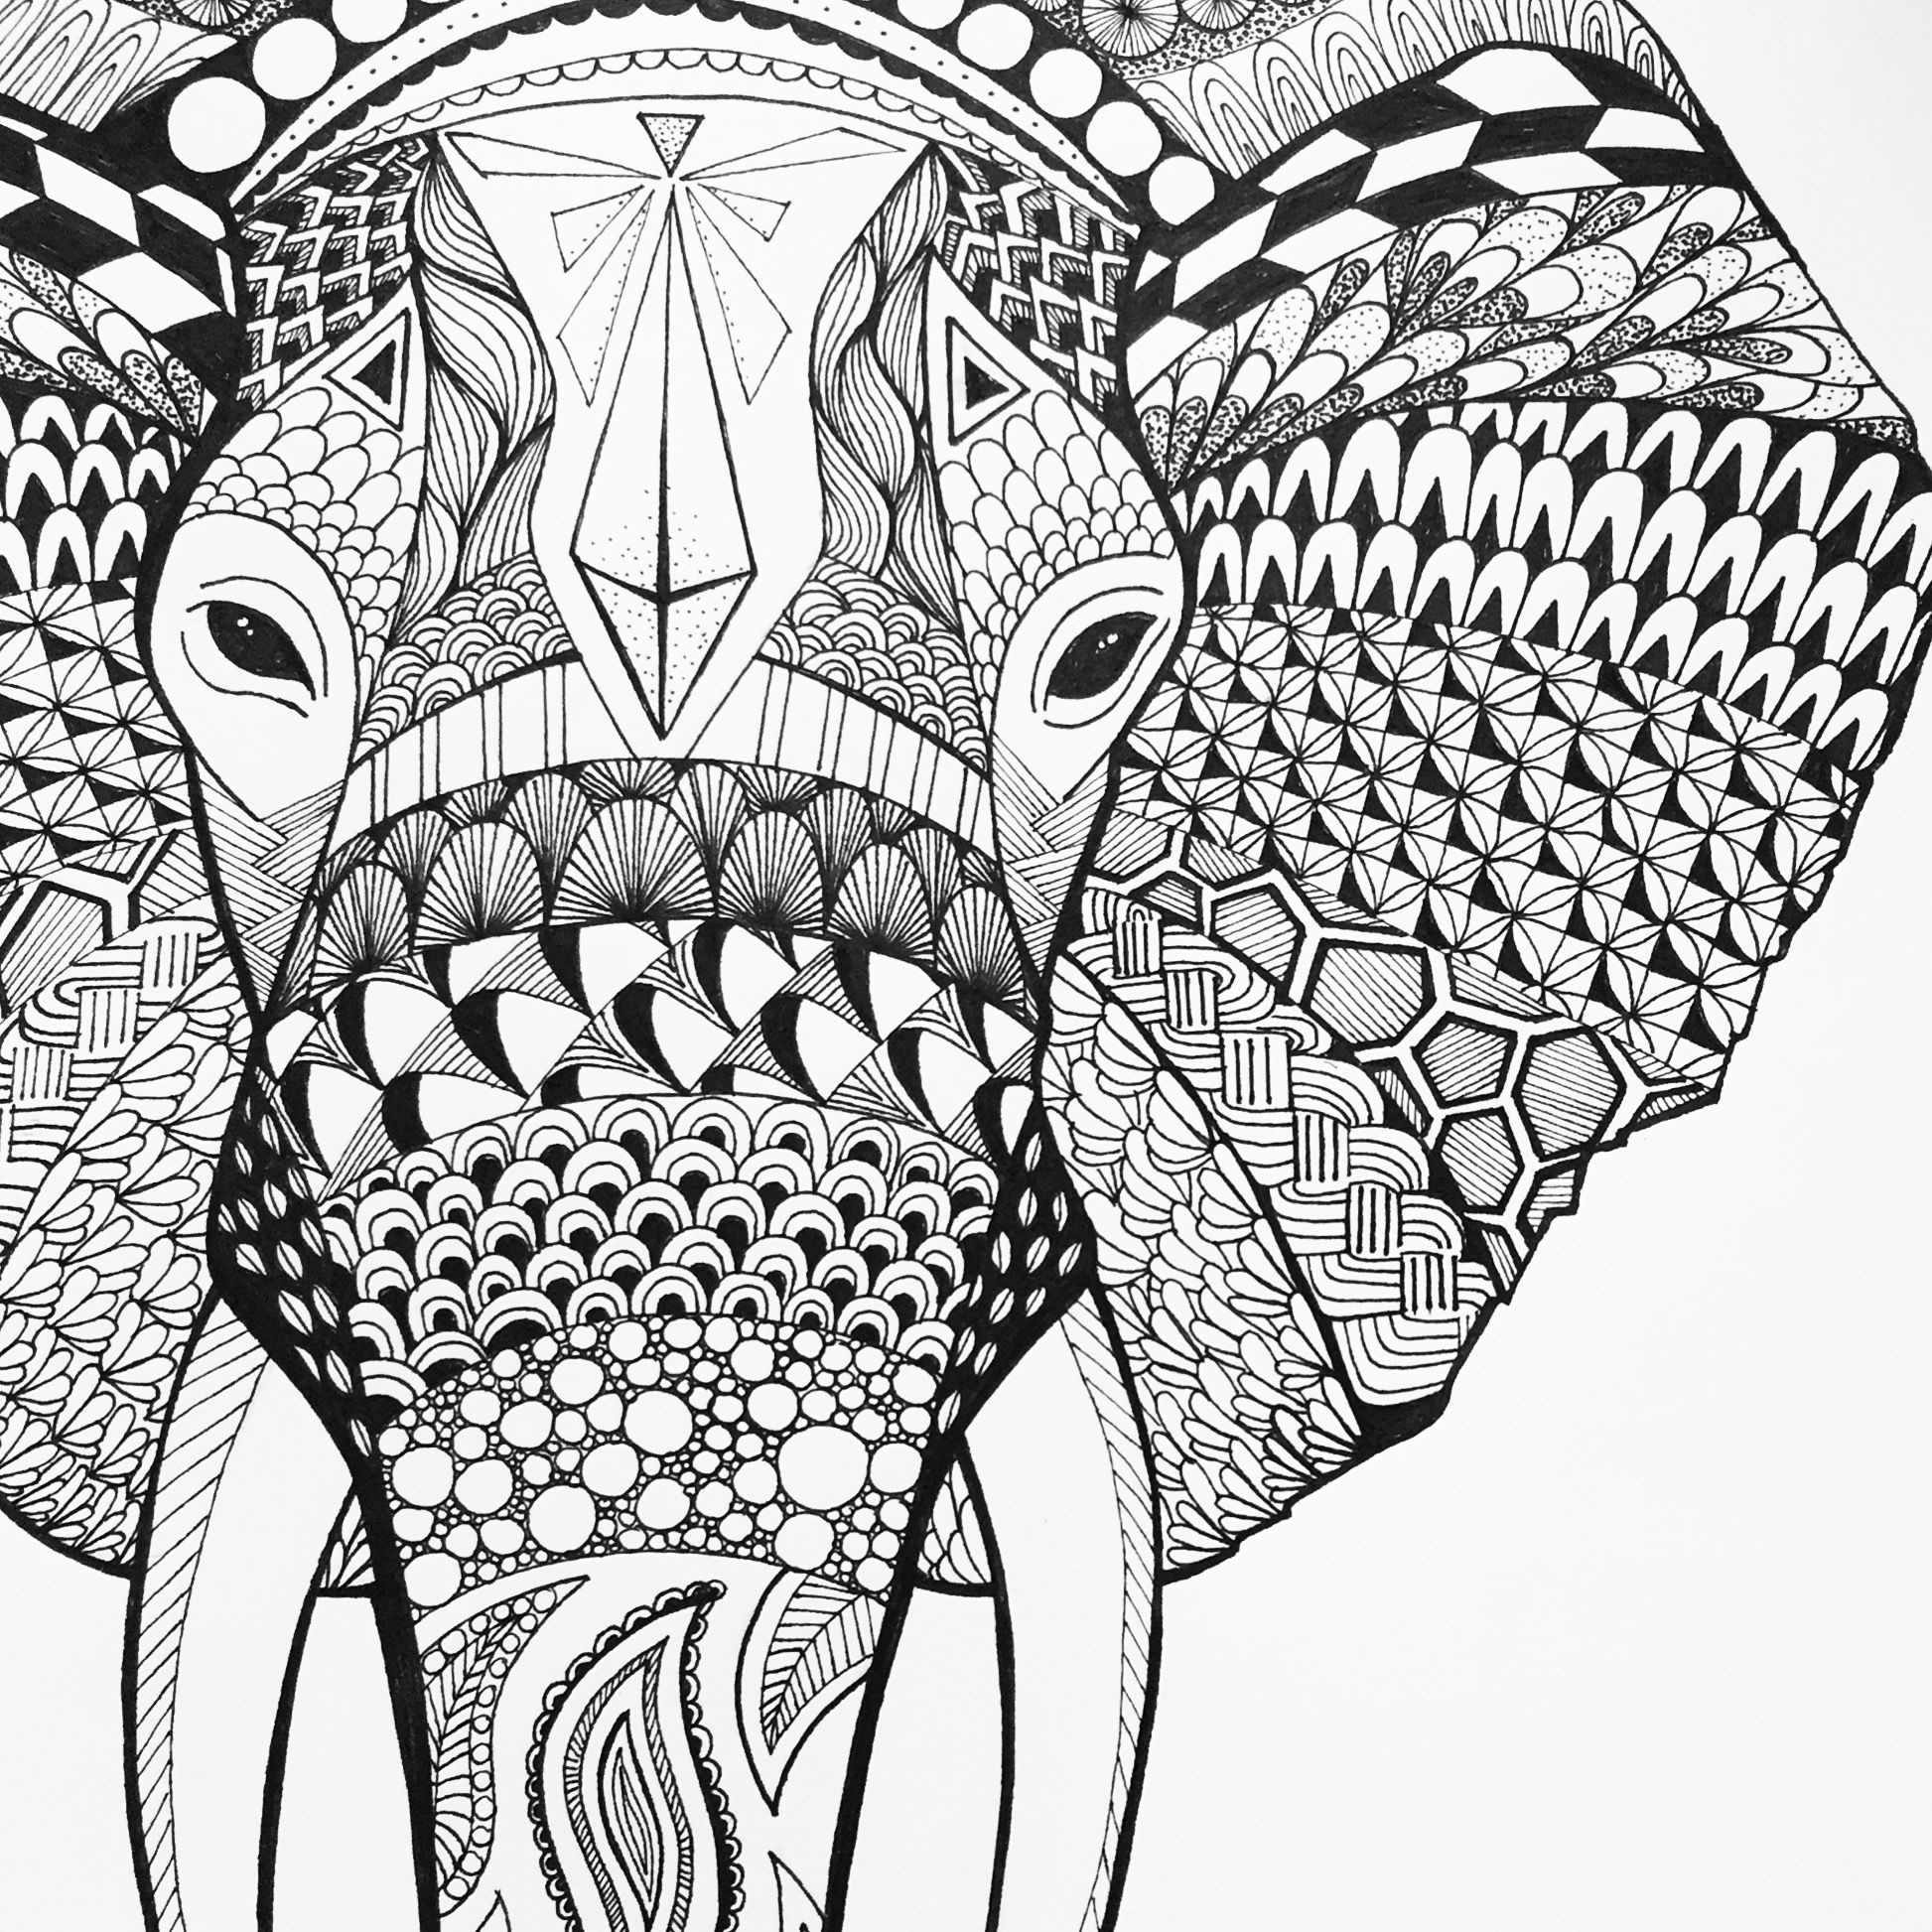 Zentangle Elefant Vorlage Elephant Sophiasmonster Elephant Zentangle Elefant Art